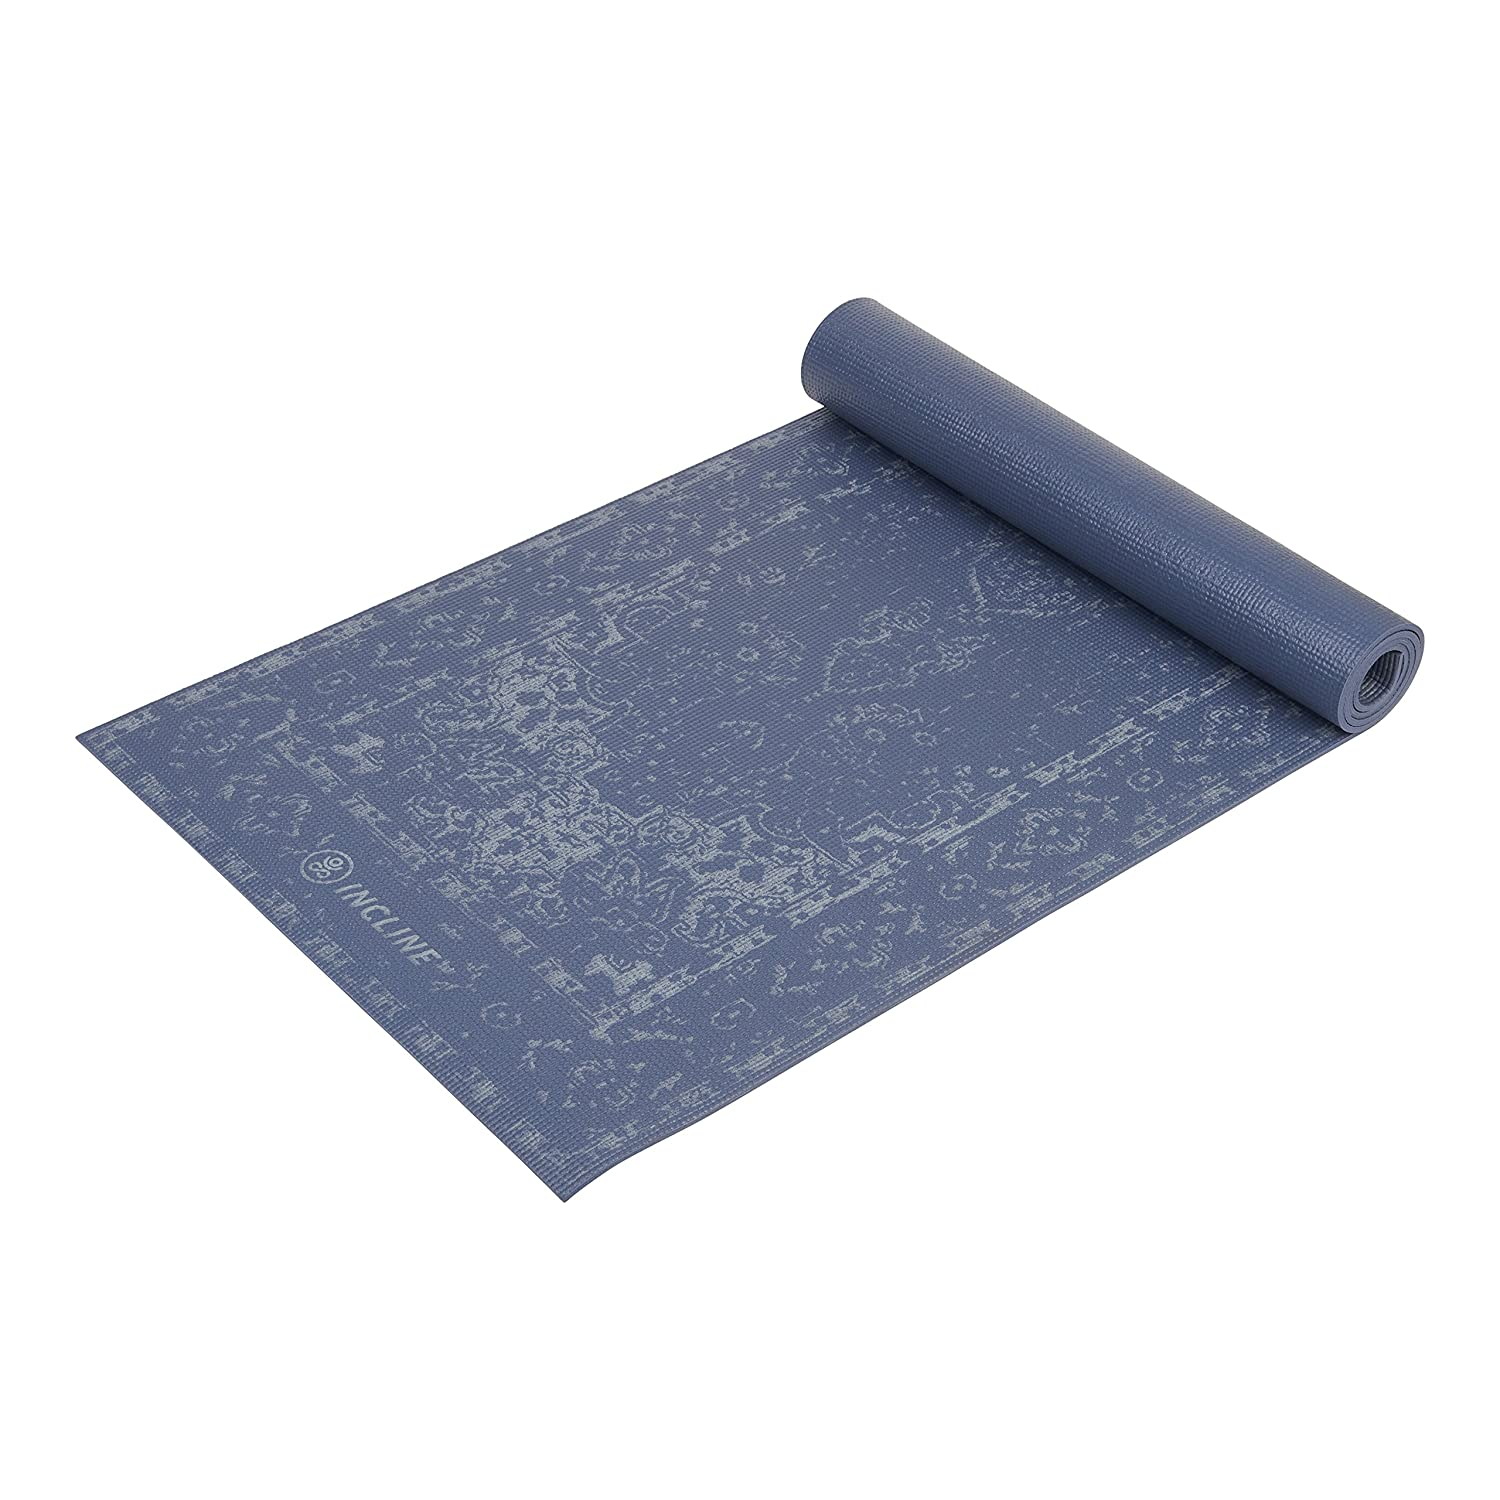 Aimerday All In One Yoga Mat Natural Rubber Extra Thick: Mats : Online Shopping For Clothing, Shoes, Jewelry, Pet